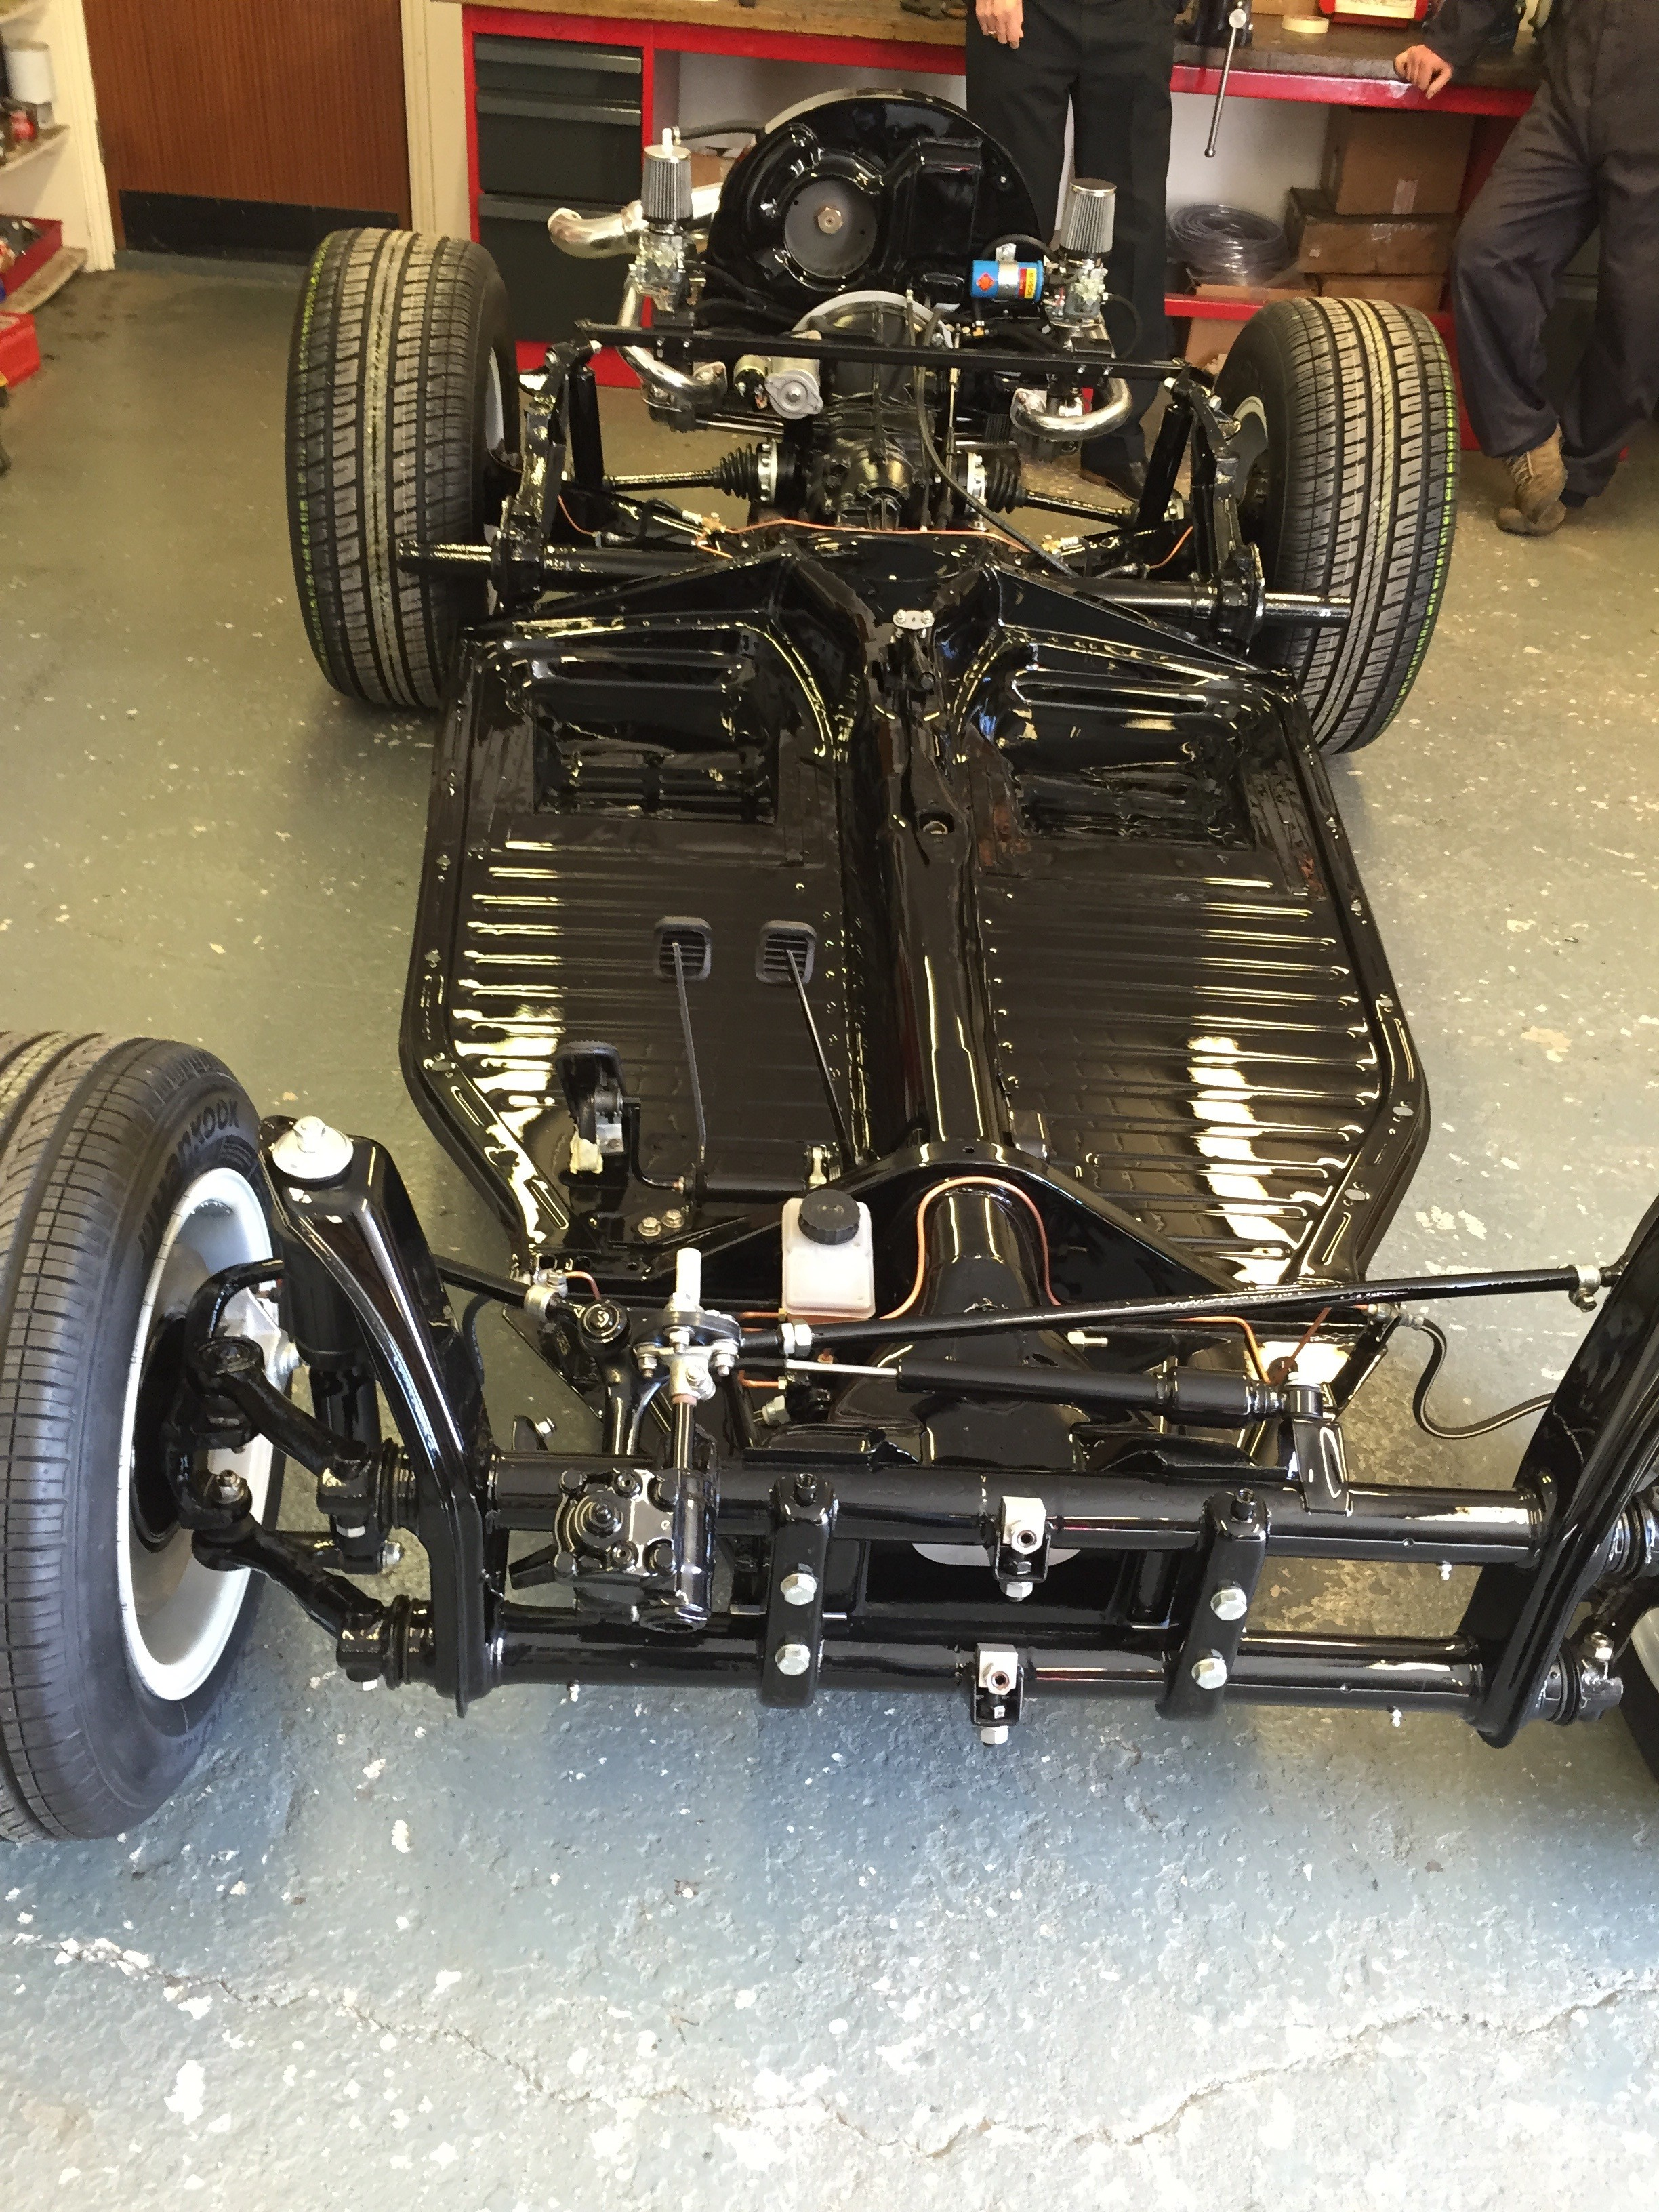 Diagram Of Car Chassis New Chassis Vw Pinterest Of Diagram Of Car Chassis